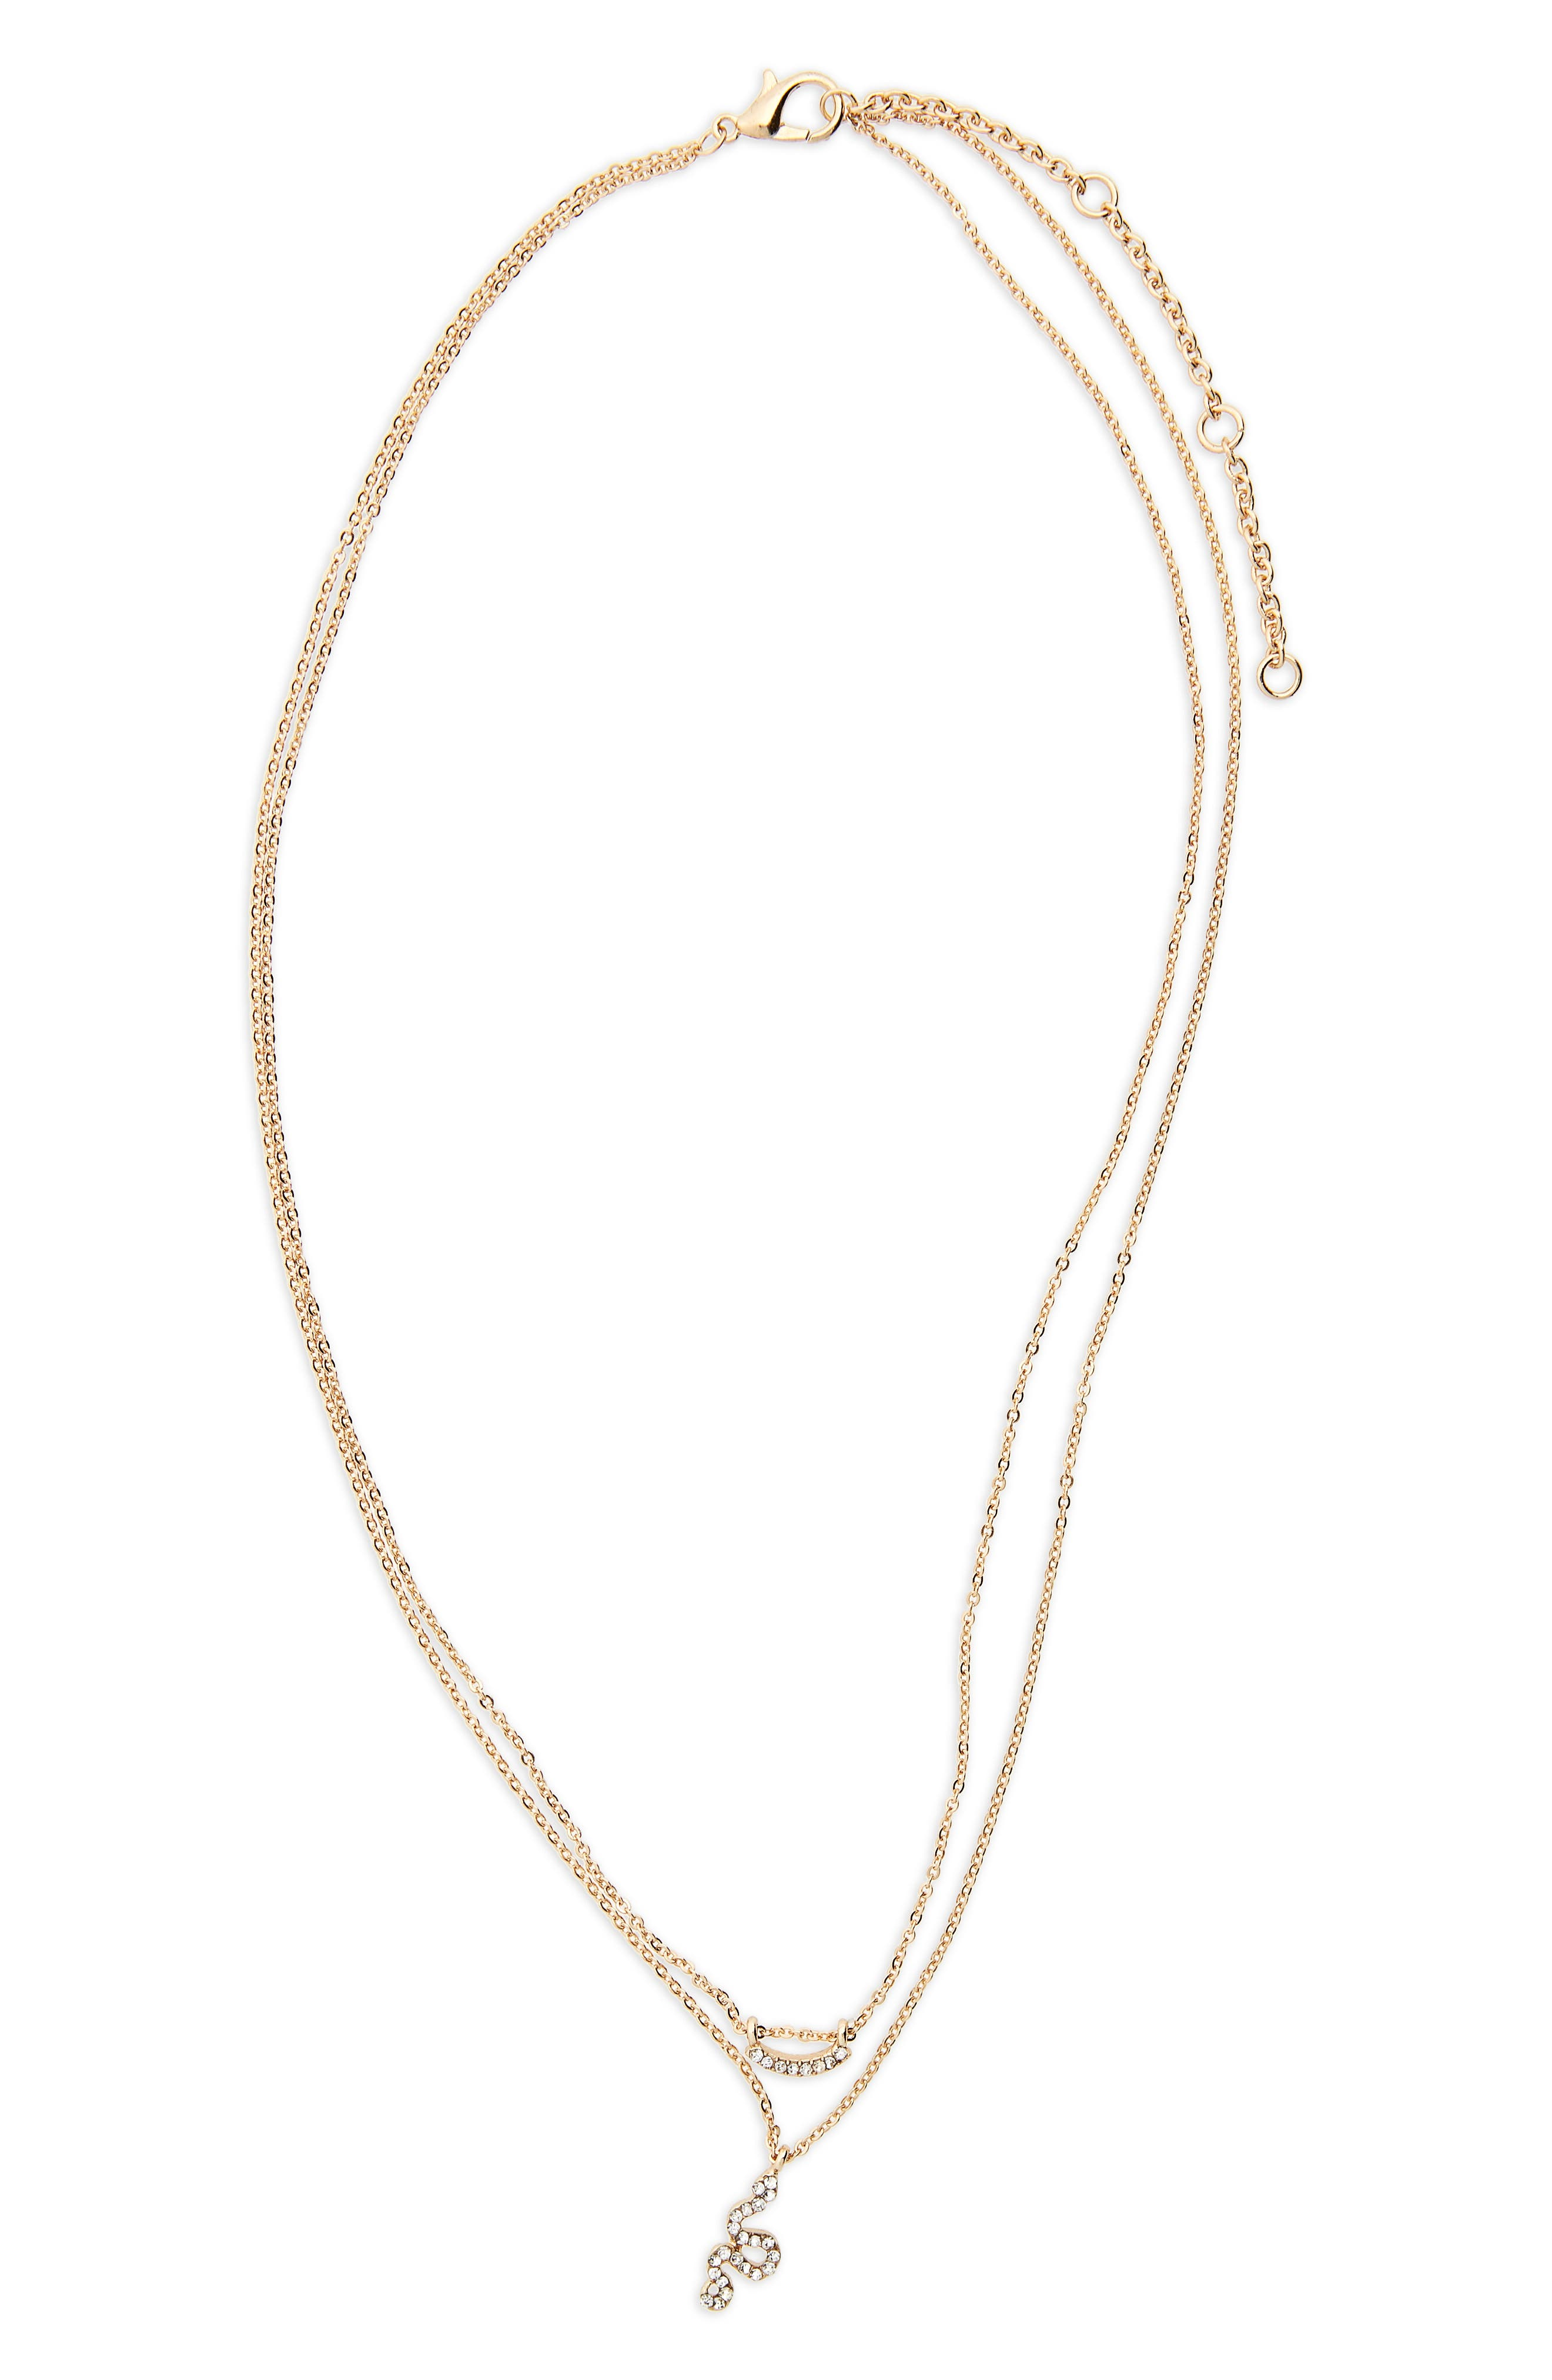 Crystal Snake Layered Necklace,                         Main,                         color, Gold/ Crystal